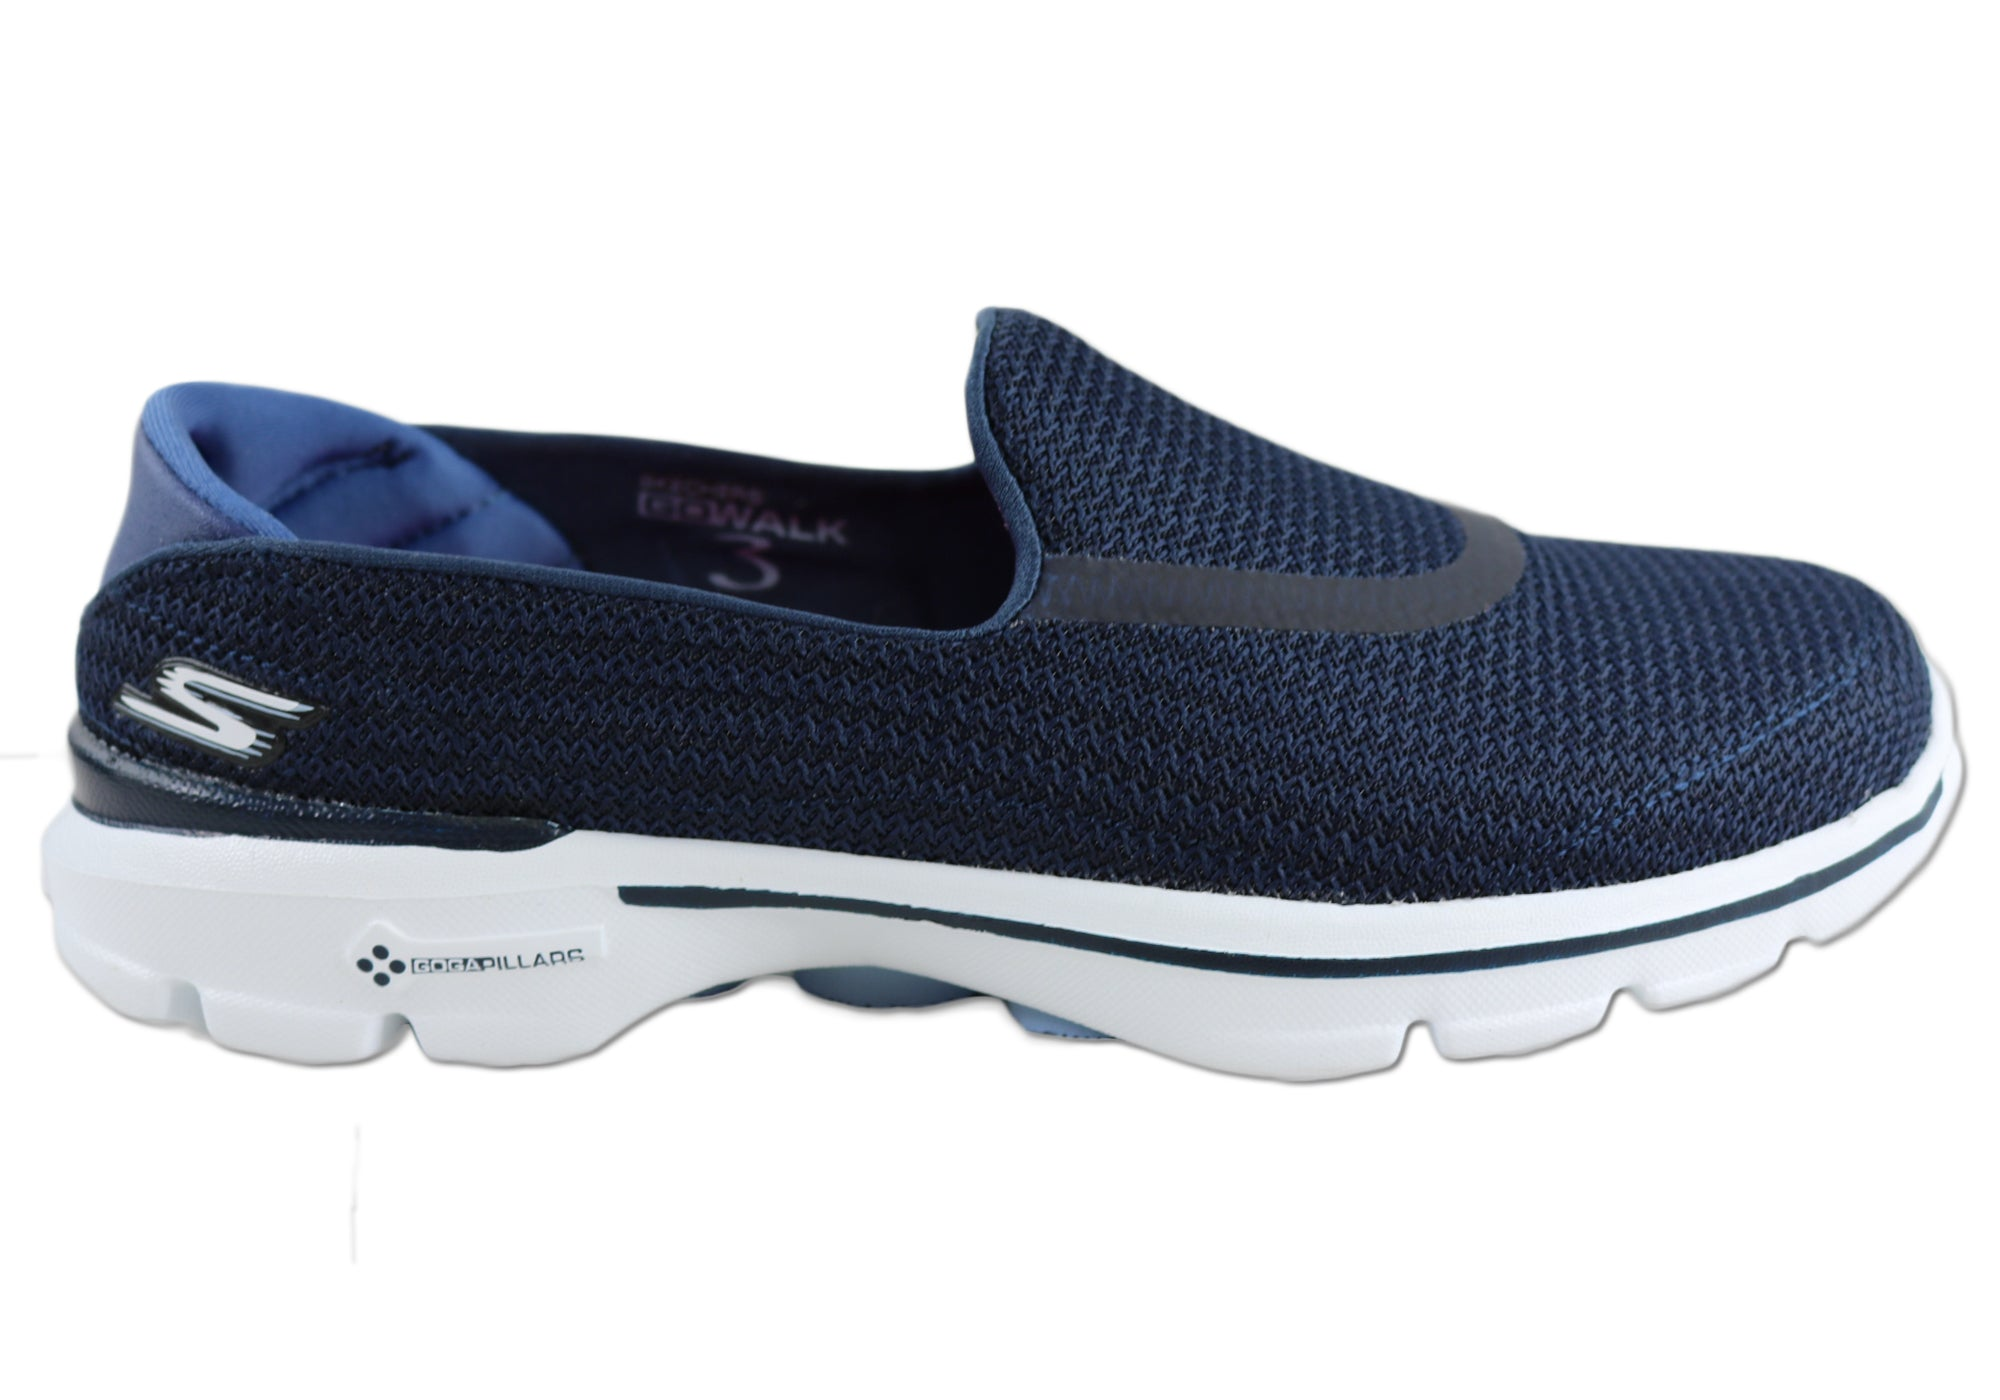 30e230a75259c Skechers Go Walk 3 Womens Lightweight Cushioned Comfort Slip On ...